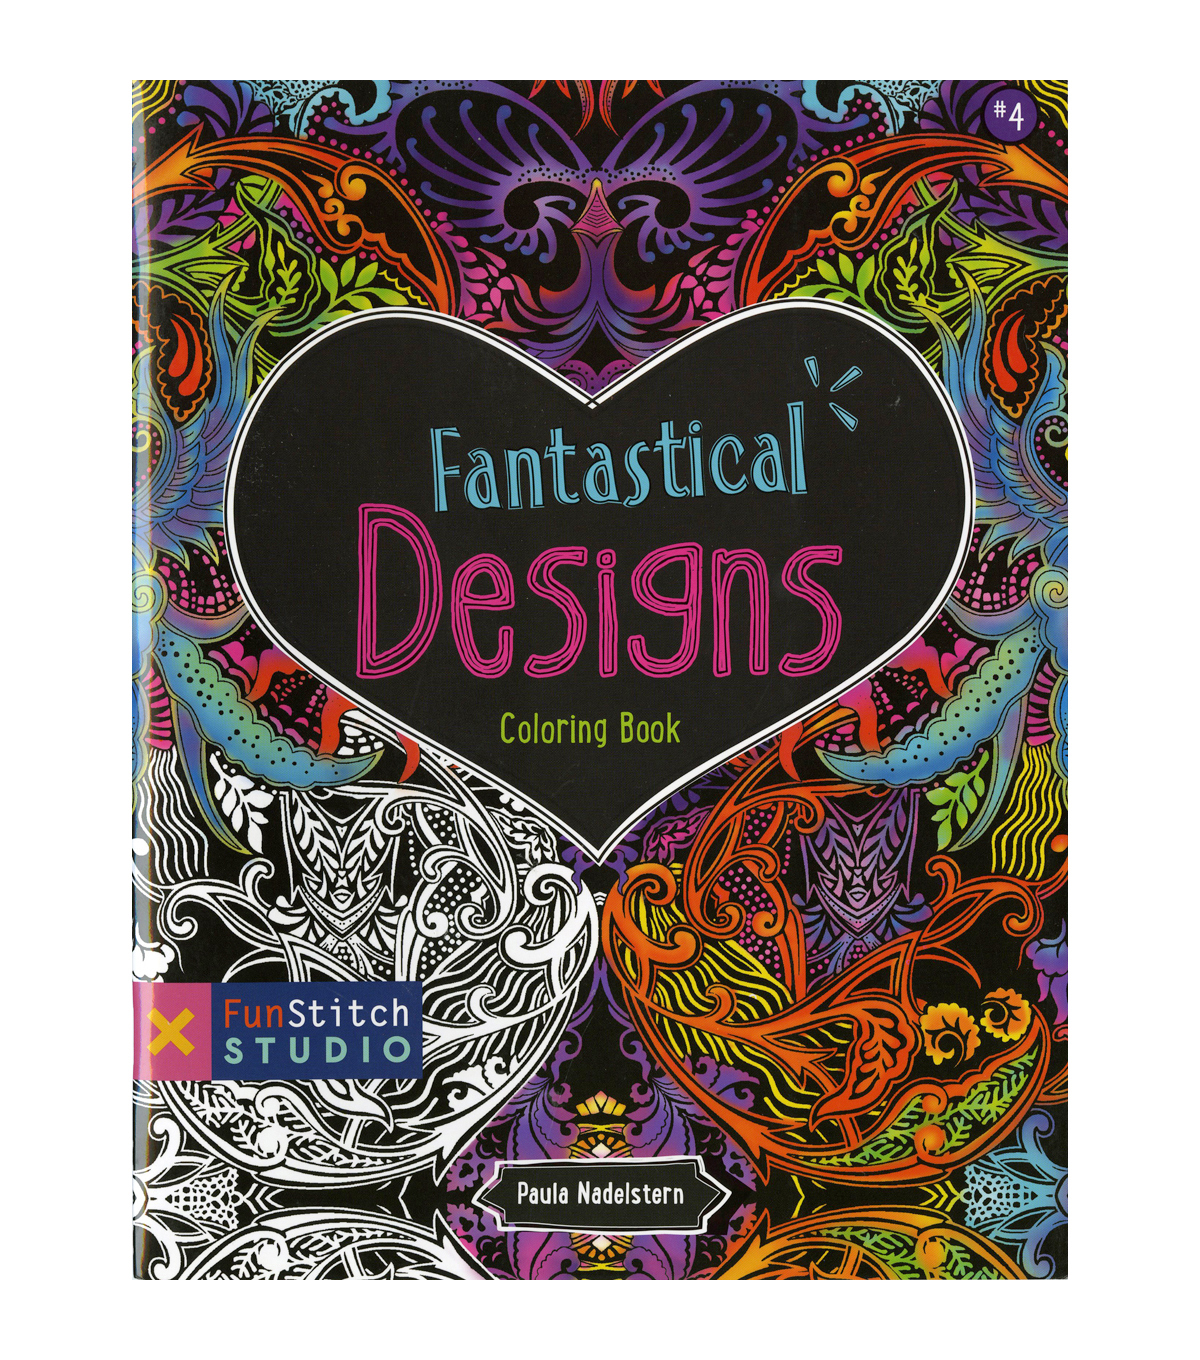 Fantastical Designs Coloring Book